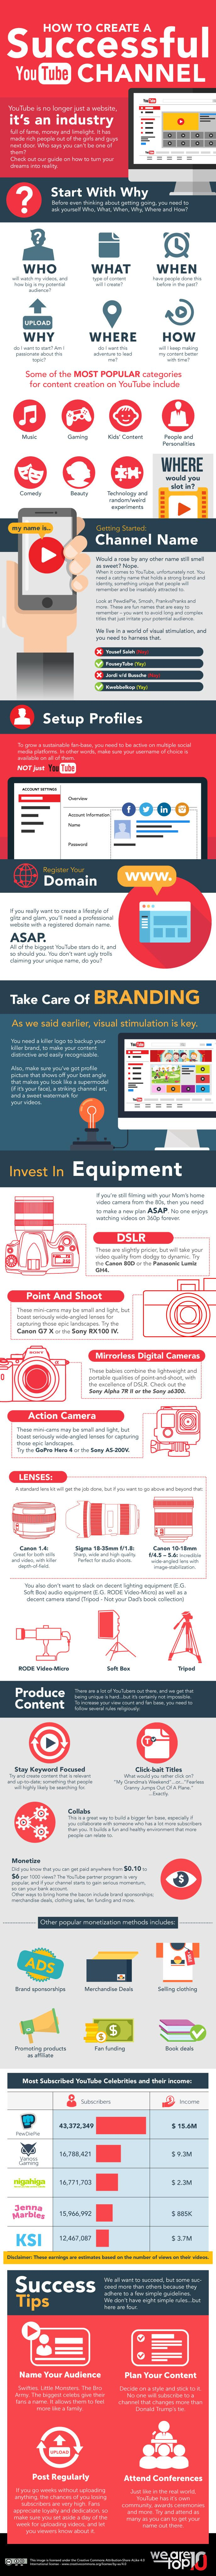 How to Create a Successful YouTube Channel #Infographic #HowTo #YouTube